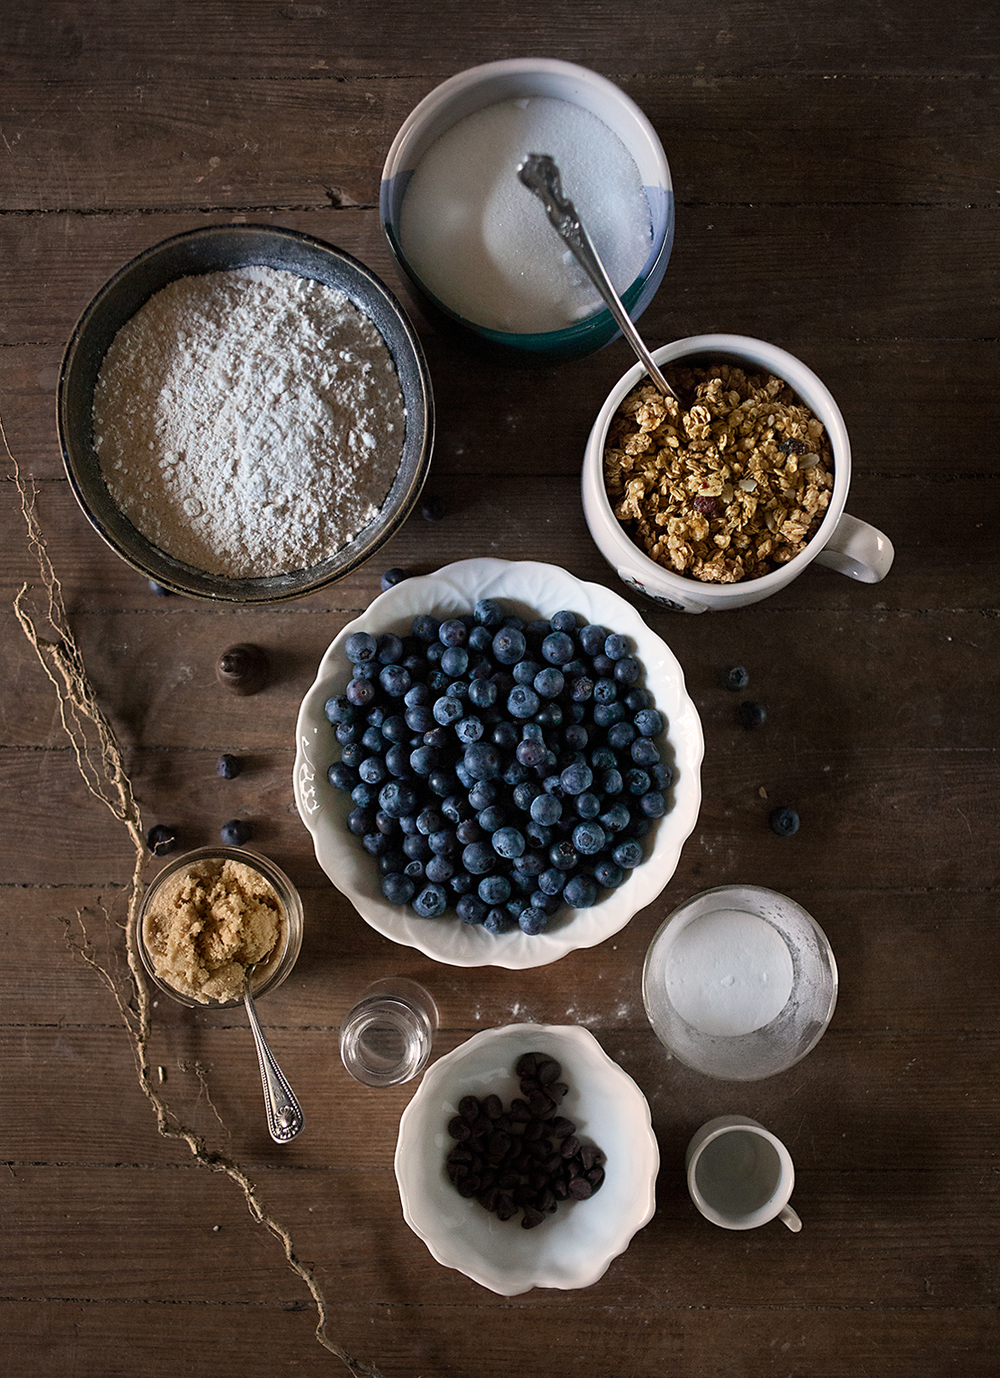 Dry Ingredients for Blueberry Breakfast Bake